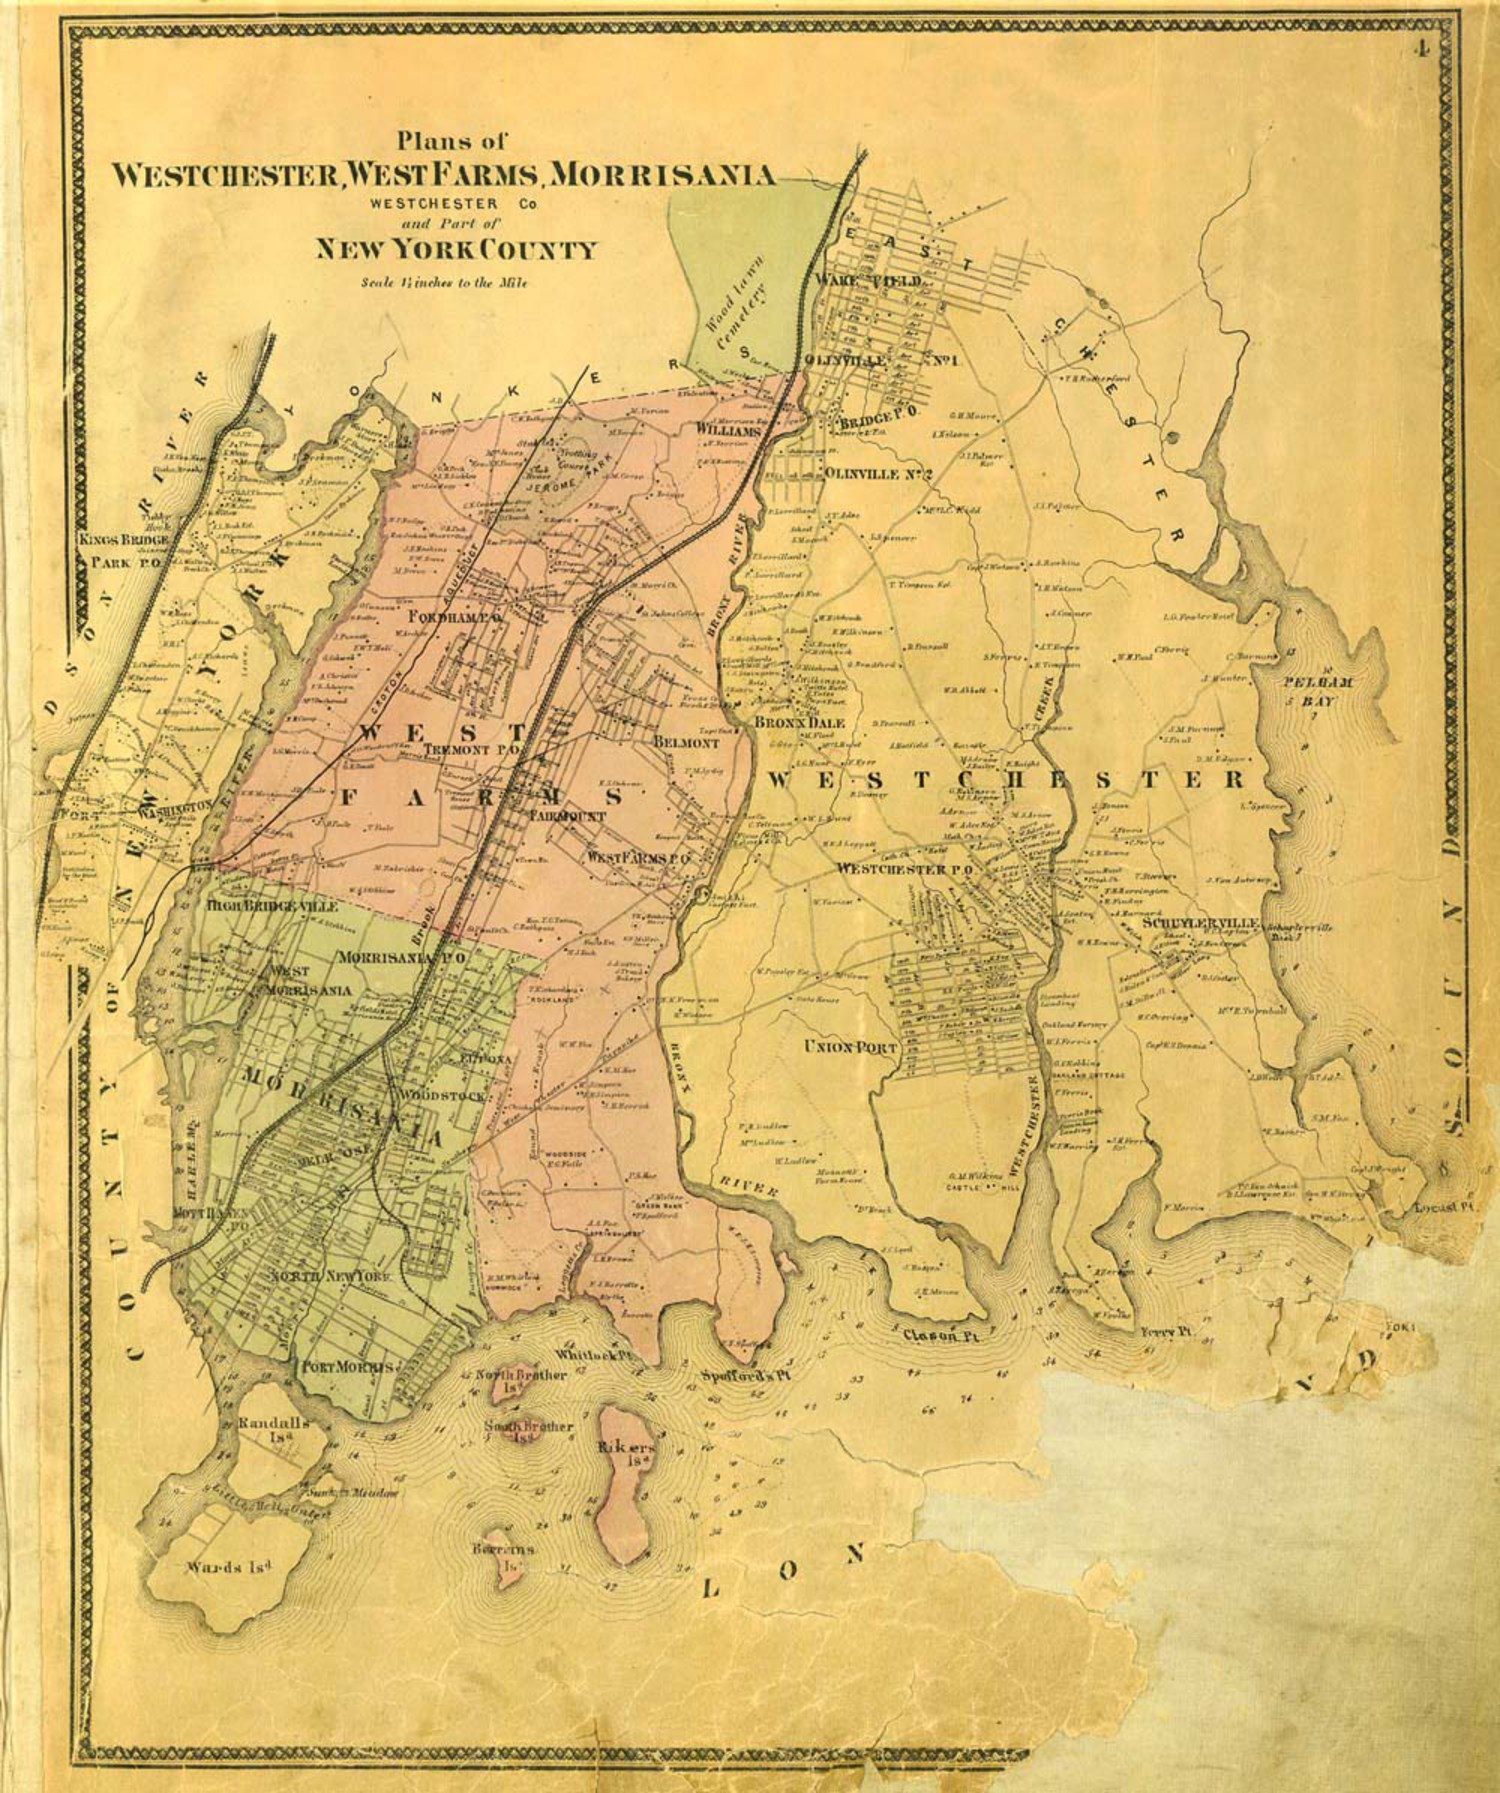 Vintage Map of 1867 Lower Westchester County, Soon to Become ... on map of the americas, map of the corpus christi, map of the denver, map of nyc, map of the upper west side, map of the pepacton reservoir, map of the southern tier, map of the bagua, map of queens, map of the 5 boros, google map bronx, map of westchester county, map of bronx new york, map of brooklyn, map of the long island, map of the north slope borough, map of the kodiak island, map of inside out, map of staten island, map of manhattan,